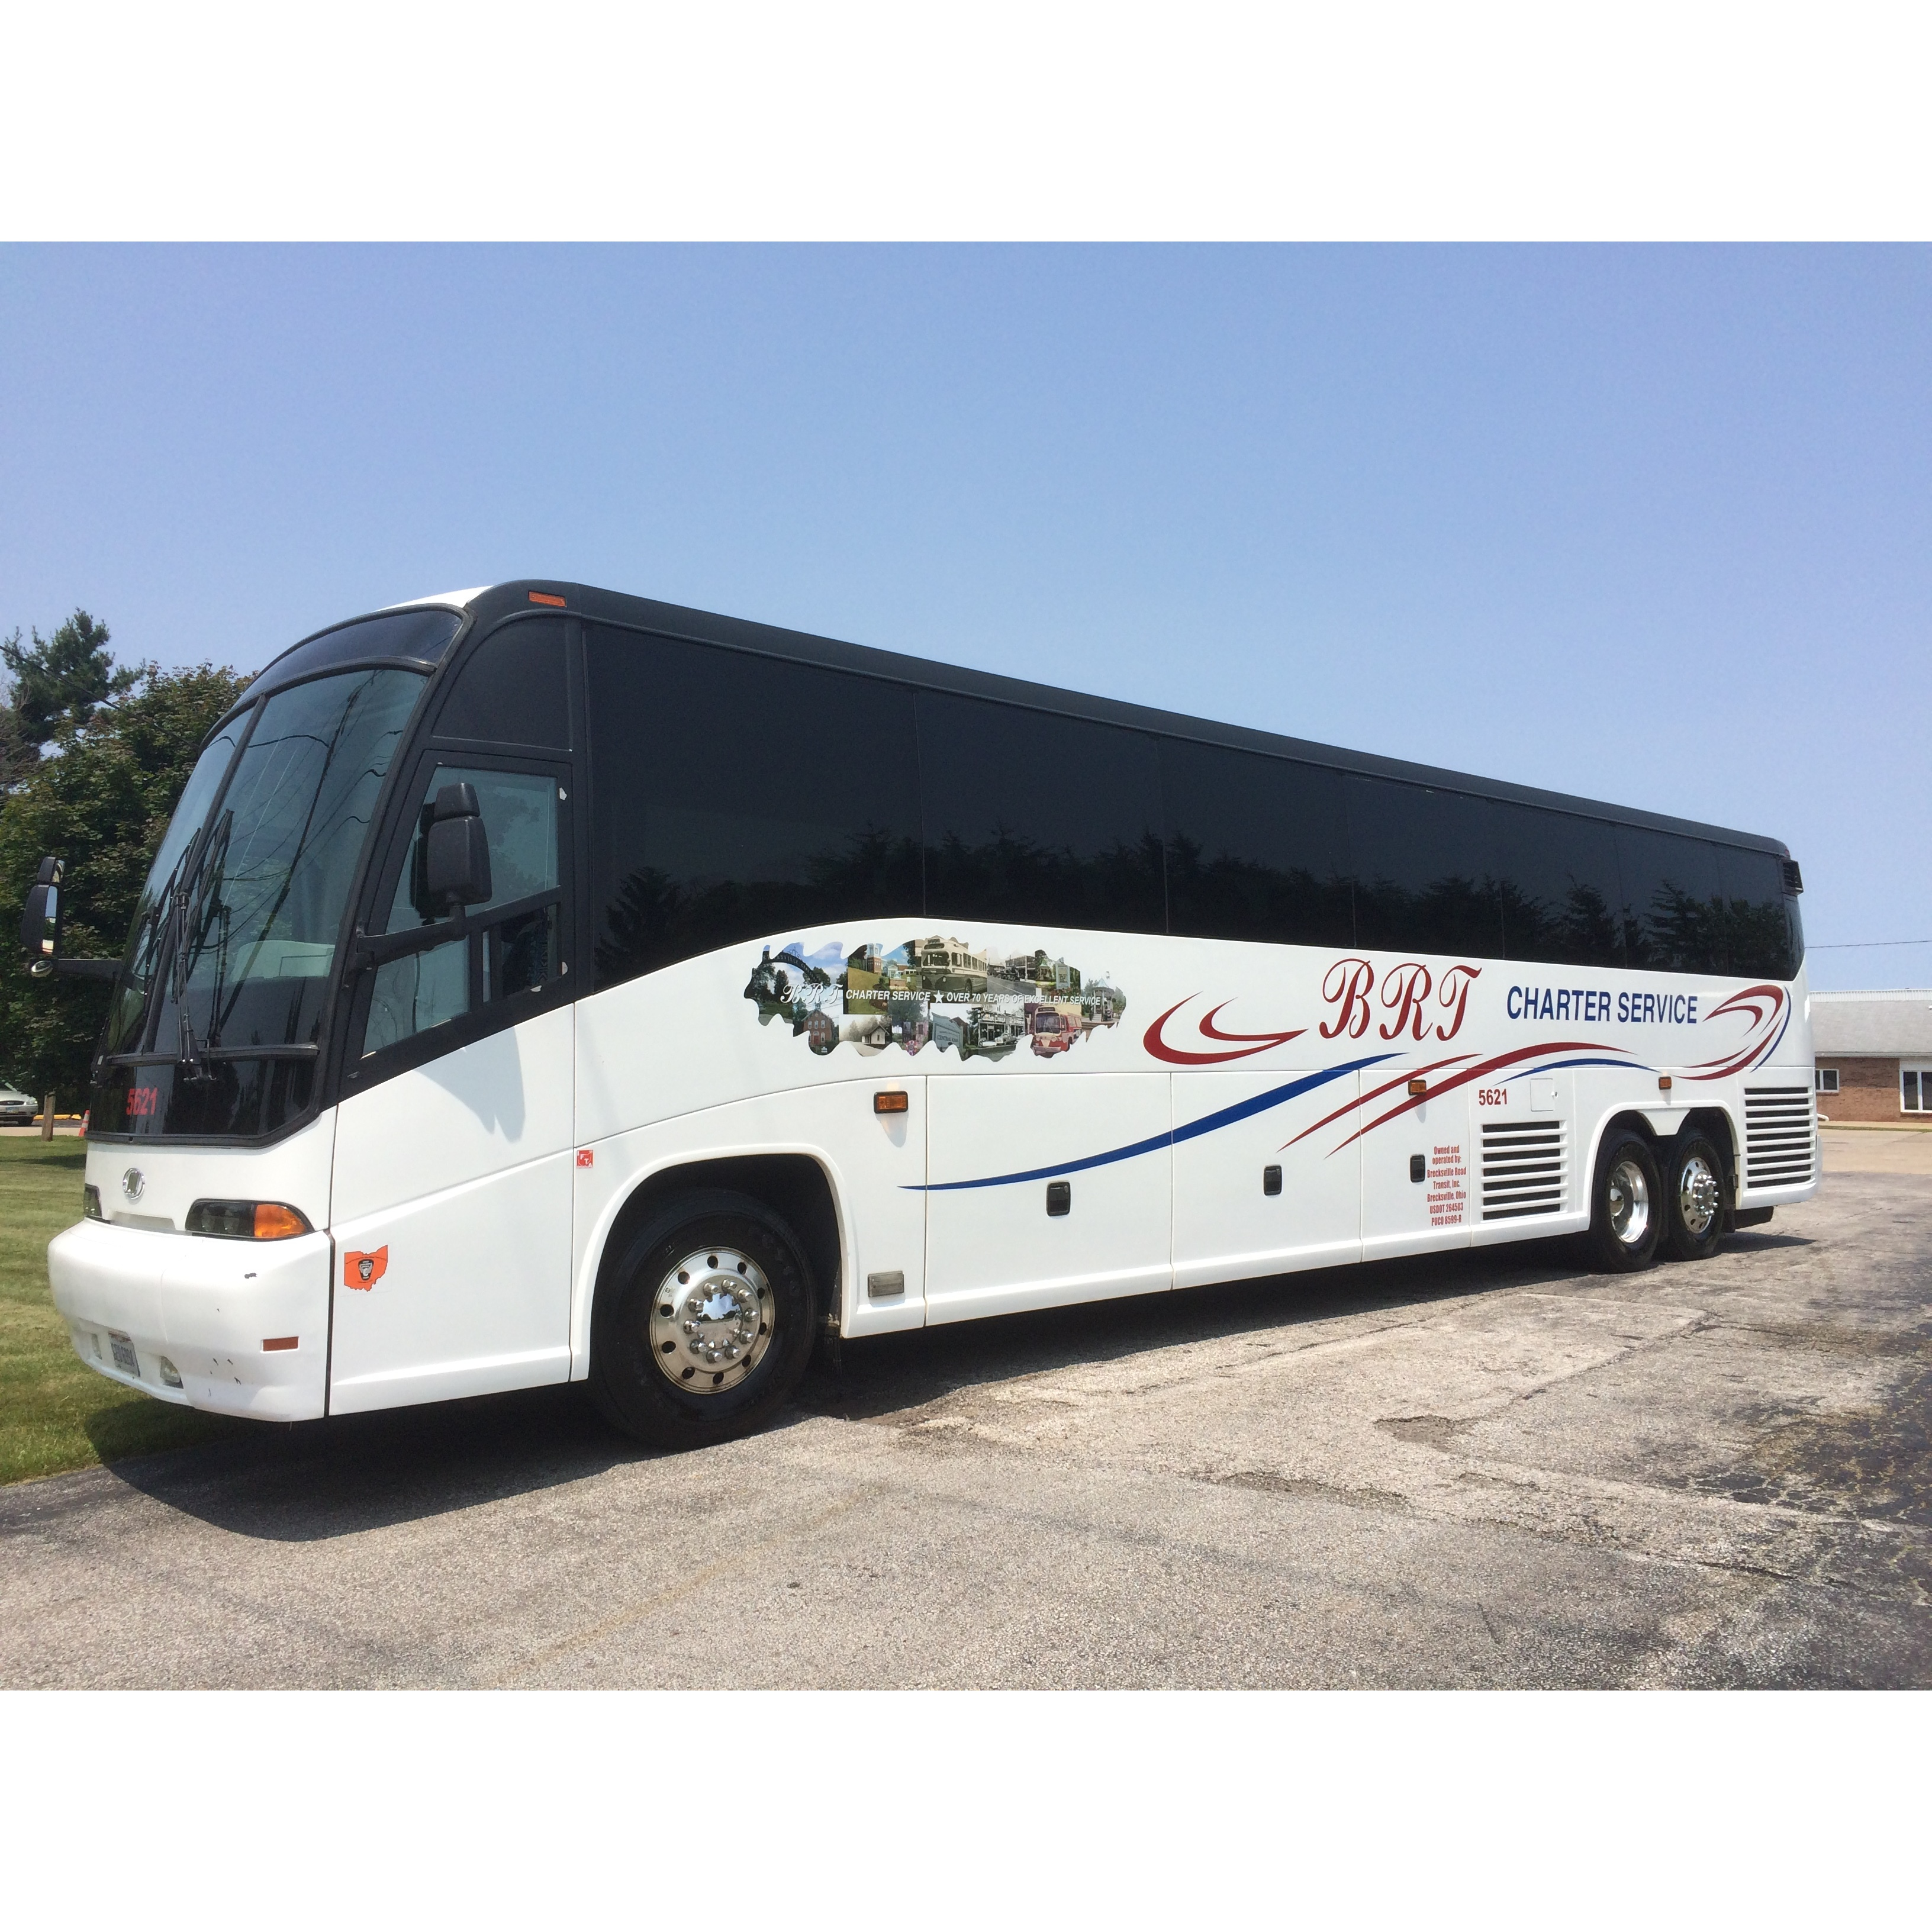 BRT Charter Service - Cleveland, OH - Buses & Trains